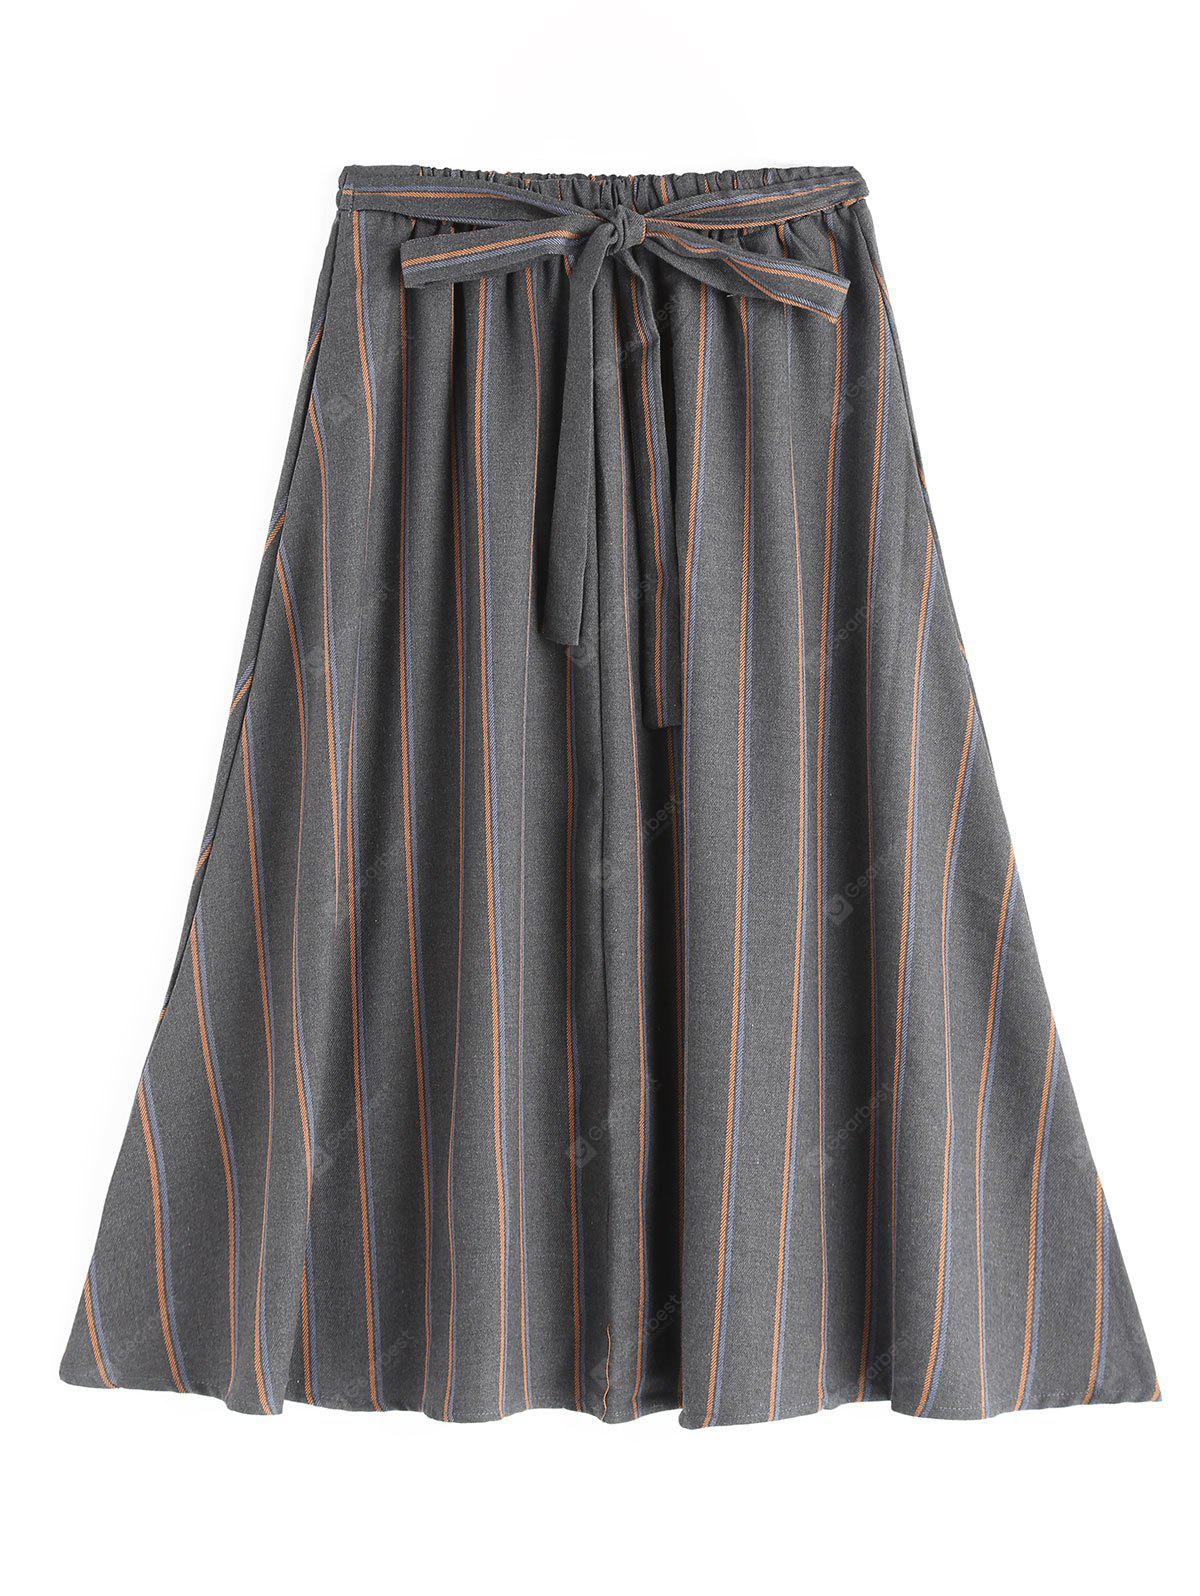 Striped Self Tie Bowknot Flare Skirt